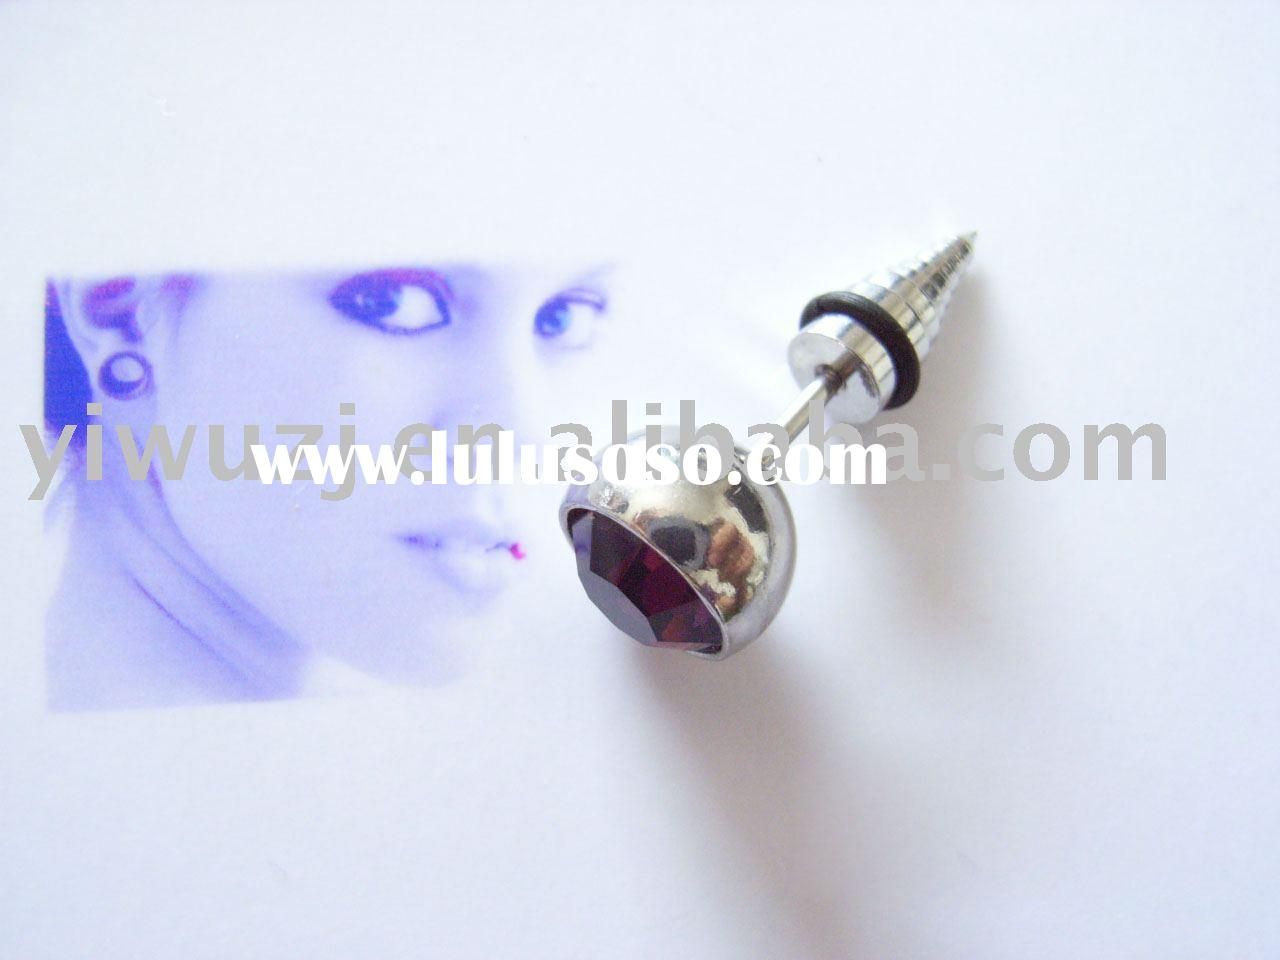 Body piercing Jewelry-ear rings expander/surgical stainless steel